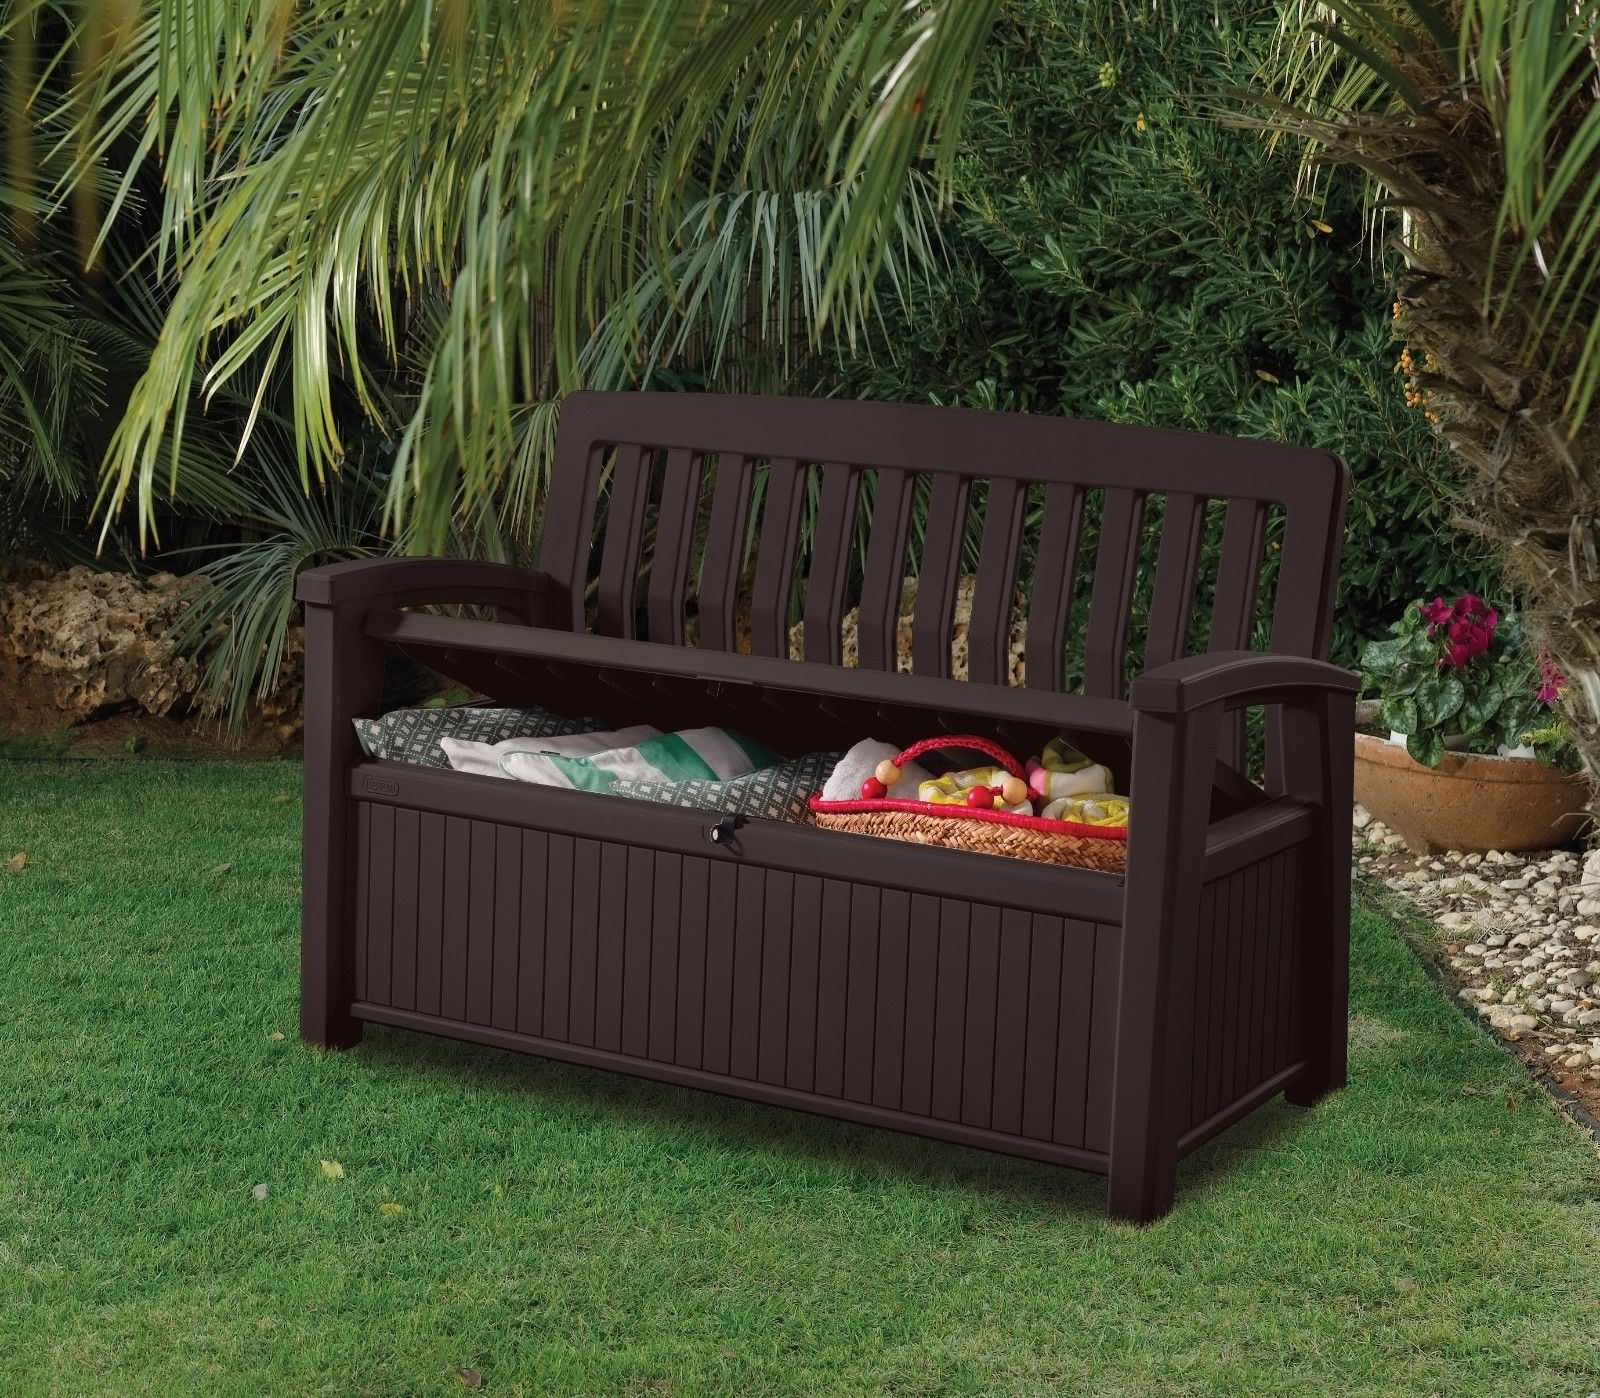 Patio storage bench keter outdoor seat garden chair box for Outdoor plastic bench seats